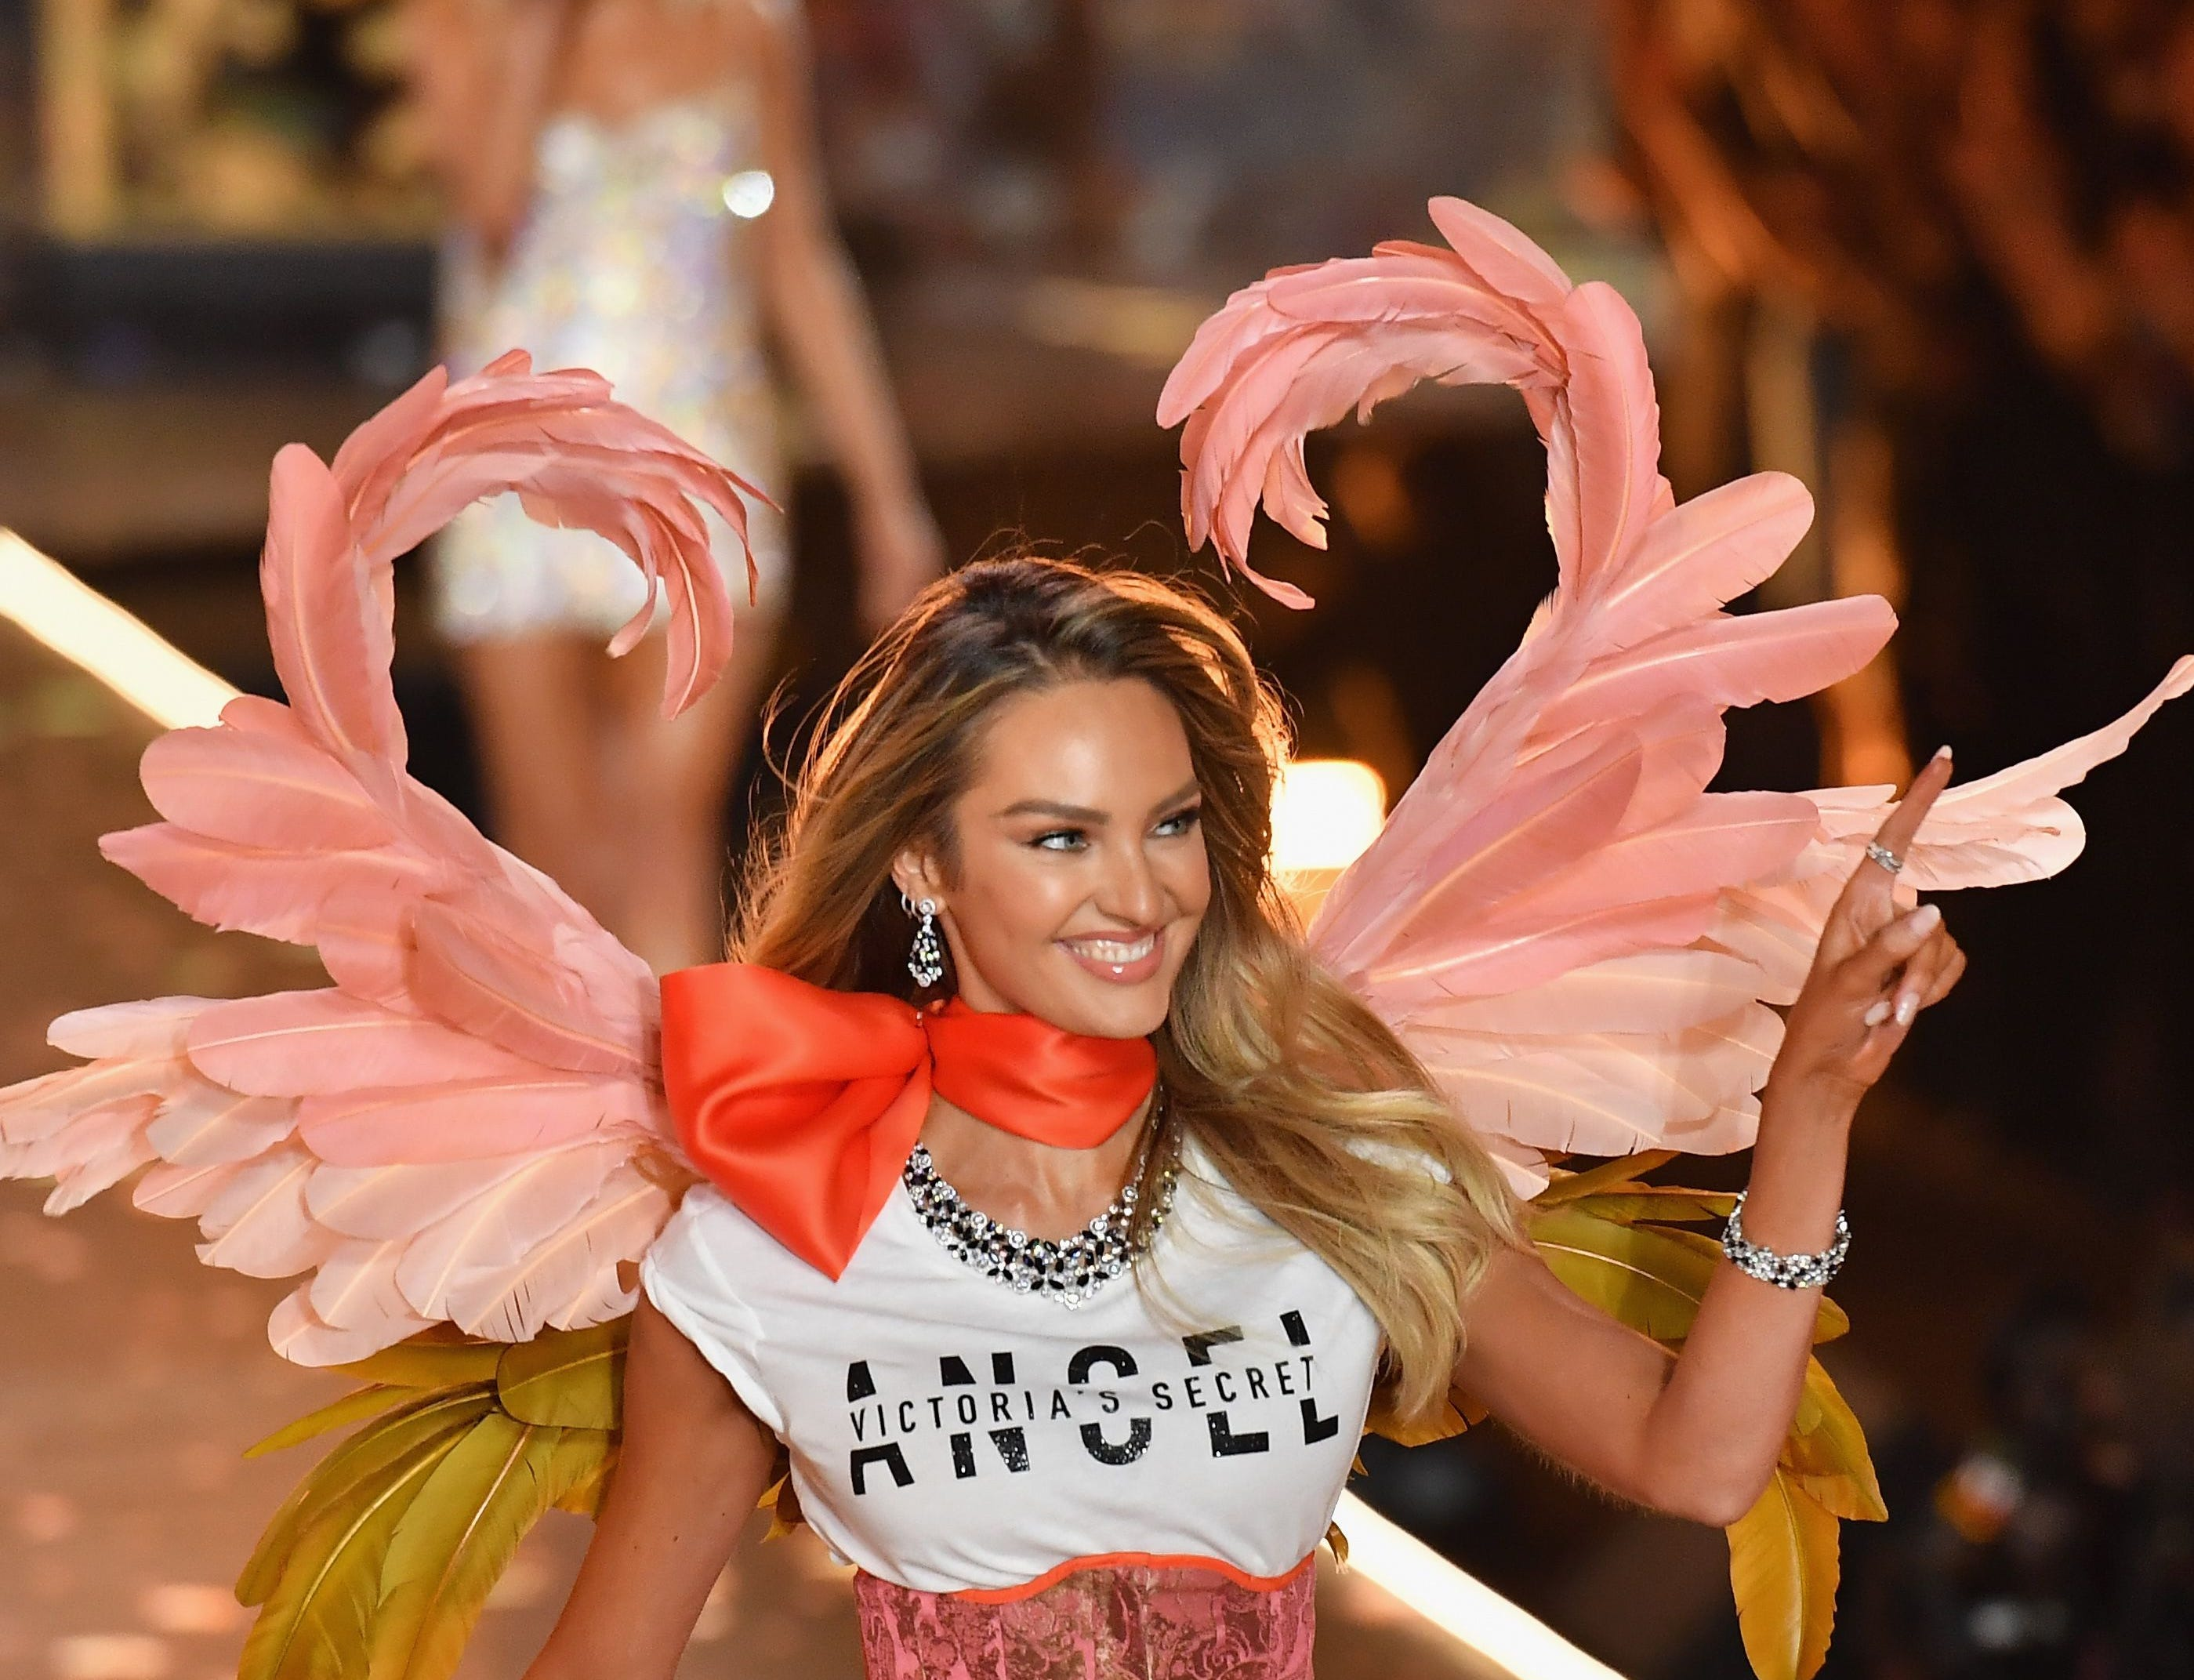 South African model Candice Swanepoel walks the runway at the 2018 Victoria's Secret Fashion Show on November 8, 2018 at Pier 94 in New York City. - Every year, the Victoria's Secret show brings its famous models together for what is consistently a glittery catwalk extravaganza. It's the most-watched fashion event of the year (800 million tune in annually) with around 12 million USD spent on putting the spectacle together according to Harper's Bazaar. (Photo by Angela Weiss / AFP)ANGELA WEISS/AFP/Getty Images ORIG FILE ID: AFP_1AP0ML